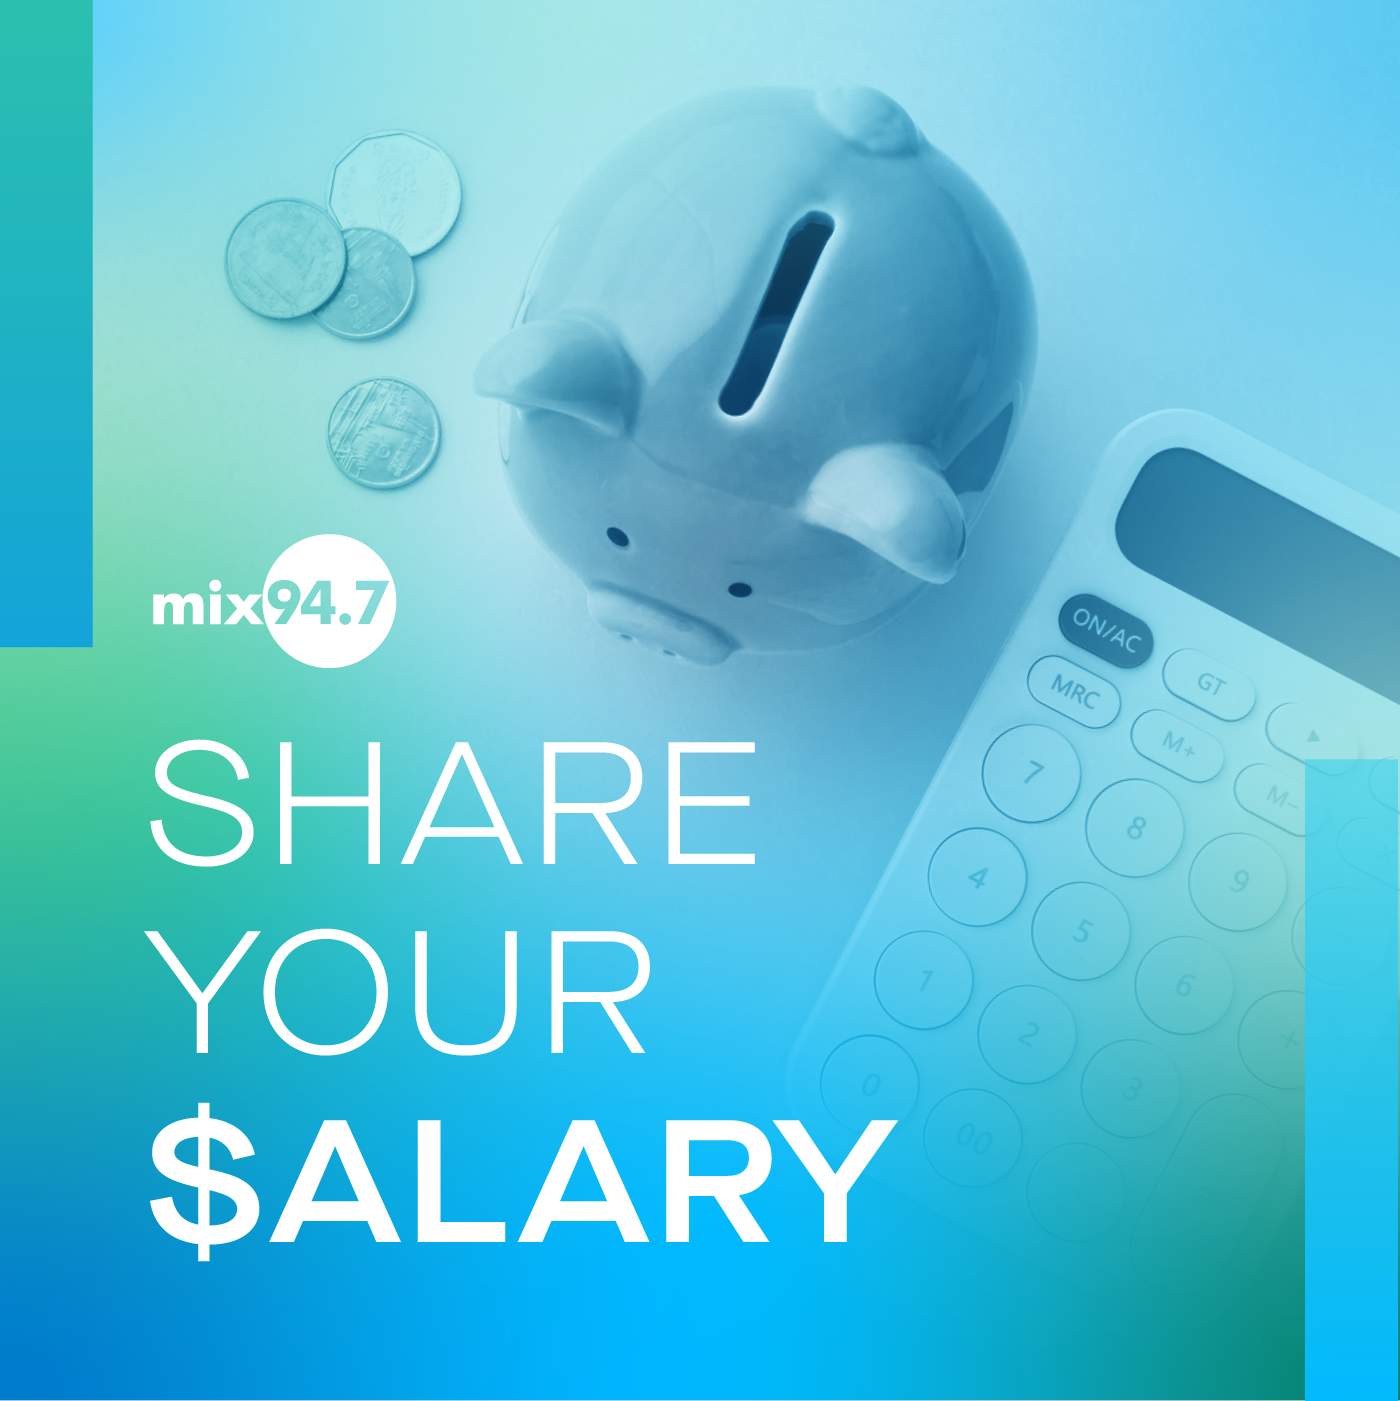 Mix 94.7's Share Your Salary